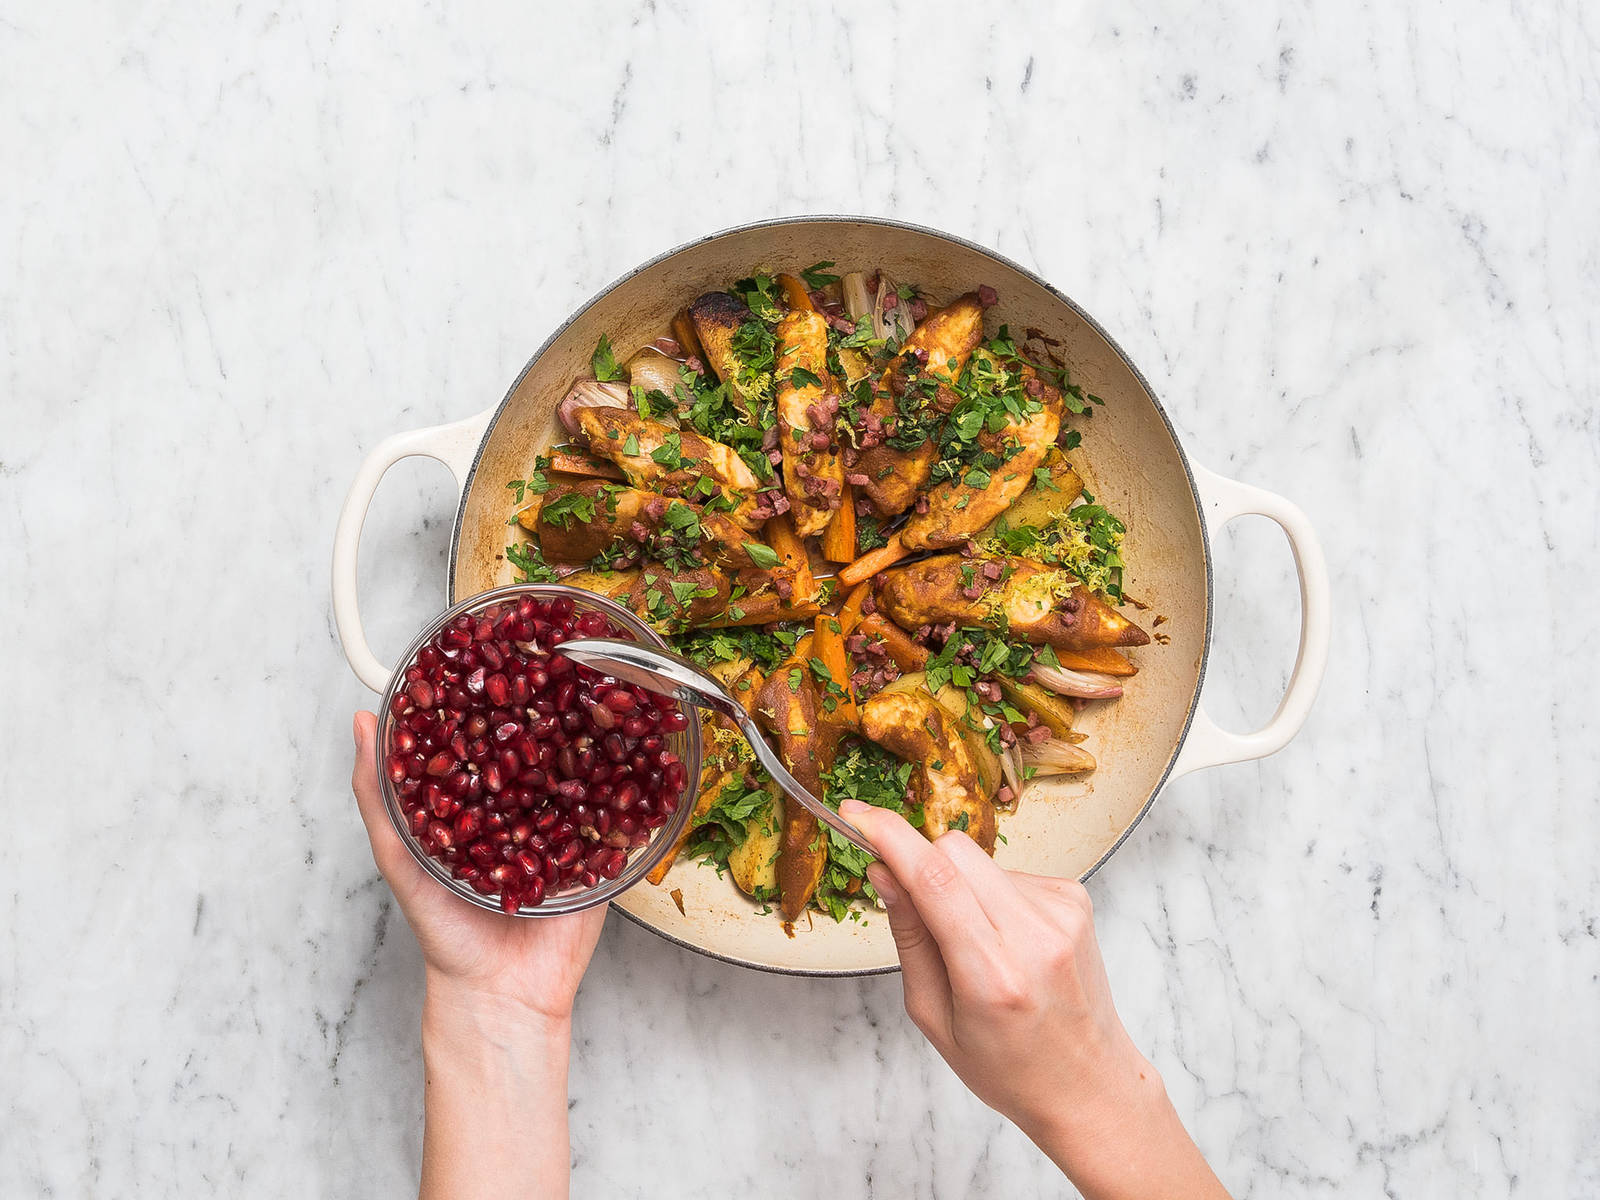 Place marinated chicken breast next to vegetables in the pan. Add chicken stock, then transfer to oven and bake at 200°C/390°F for approx. 15 min. Serve with fried bacon bits, mint, parsley, lemon zest, and pomegranate seeds. Enjoy!